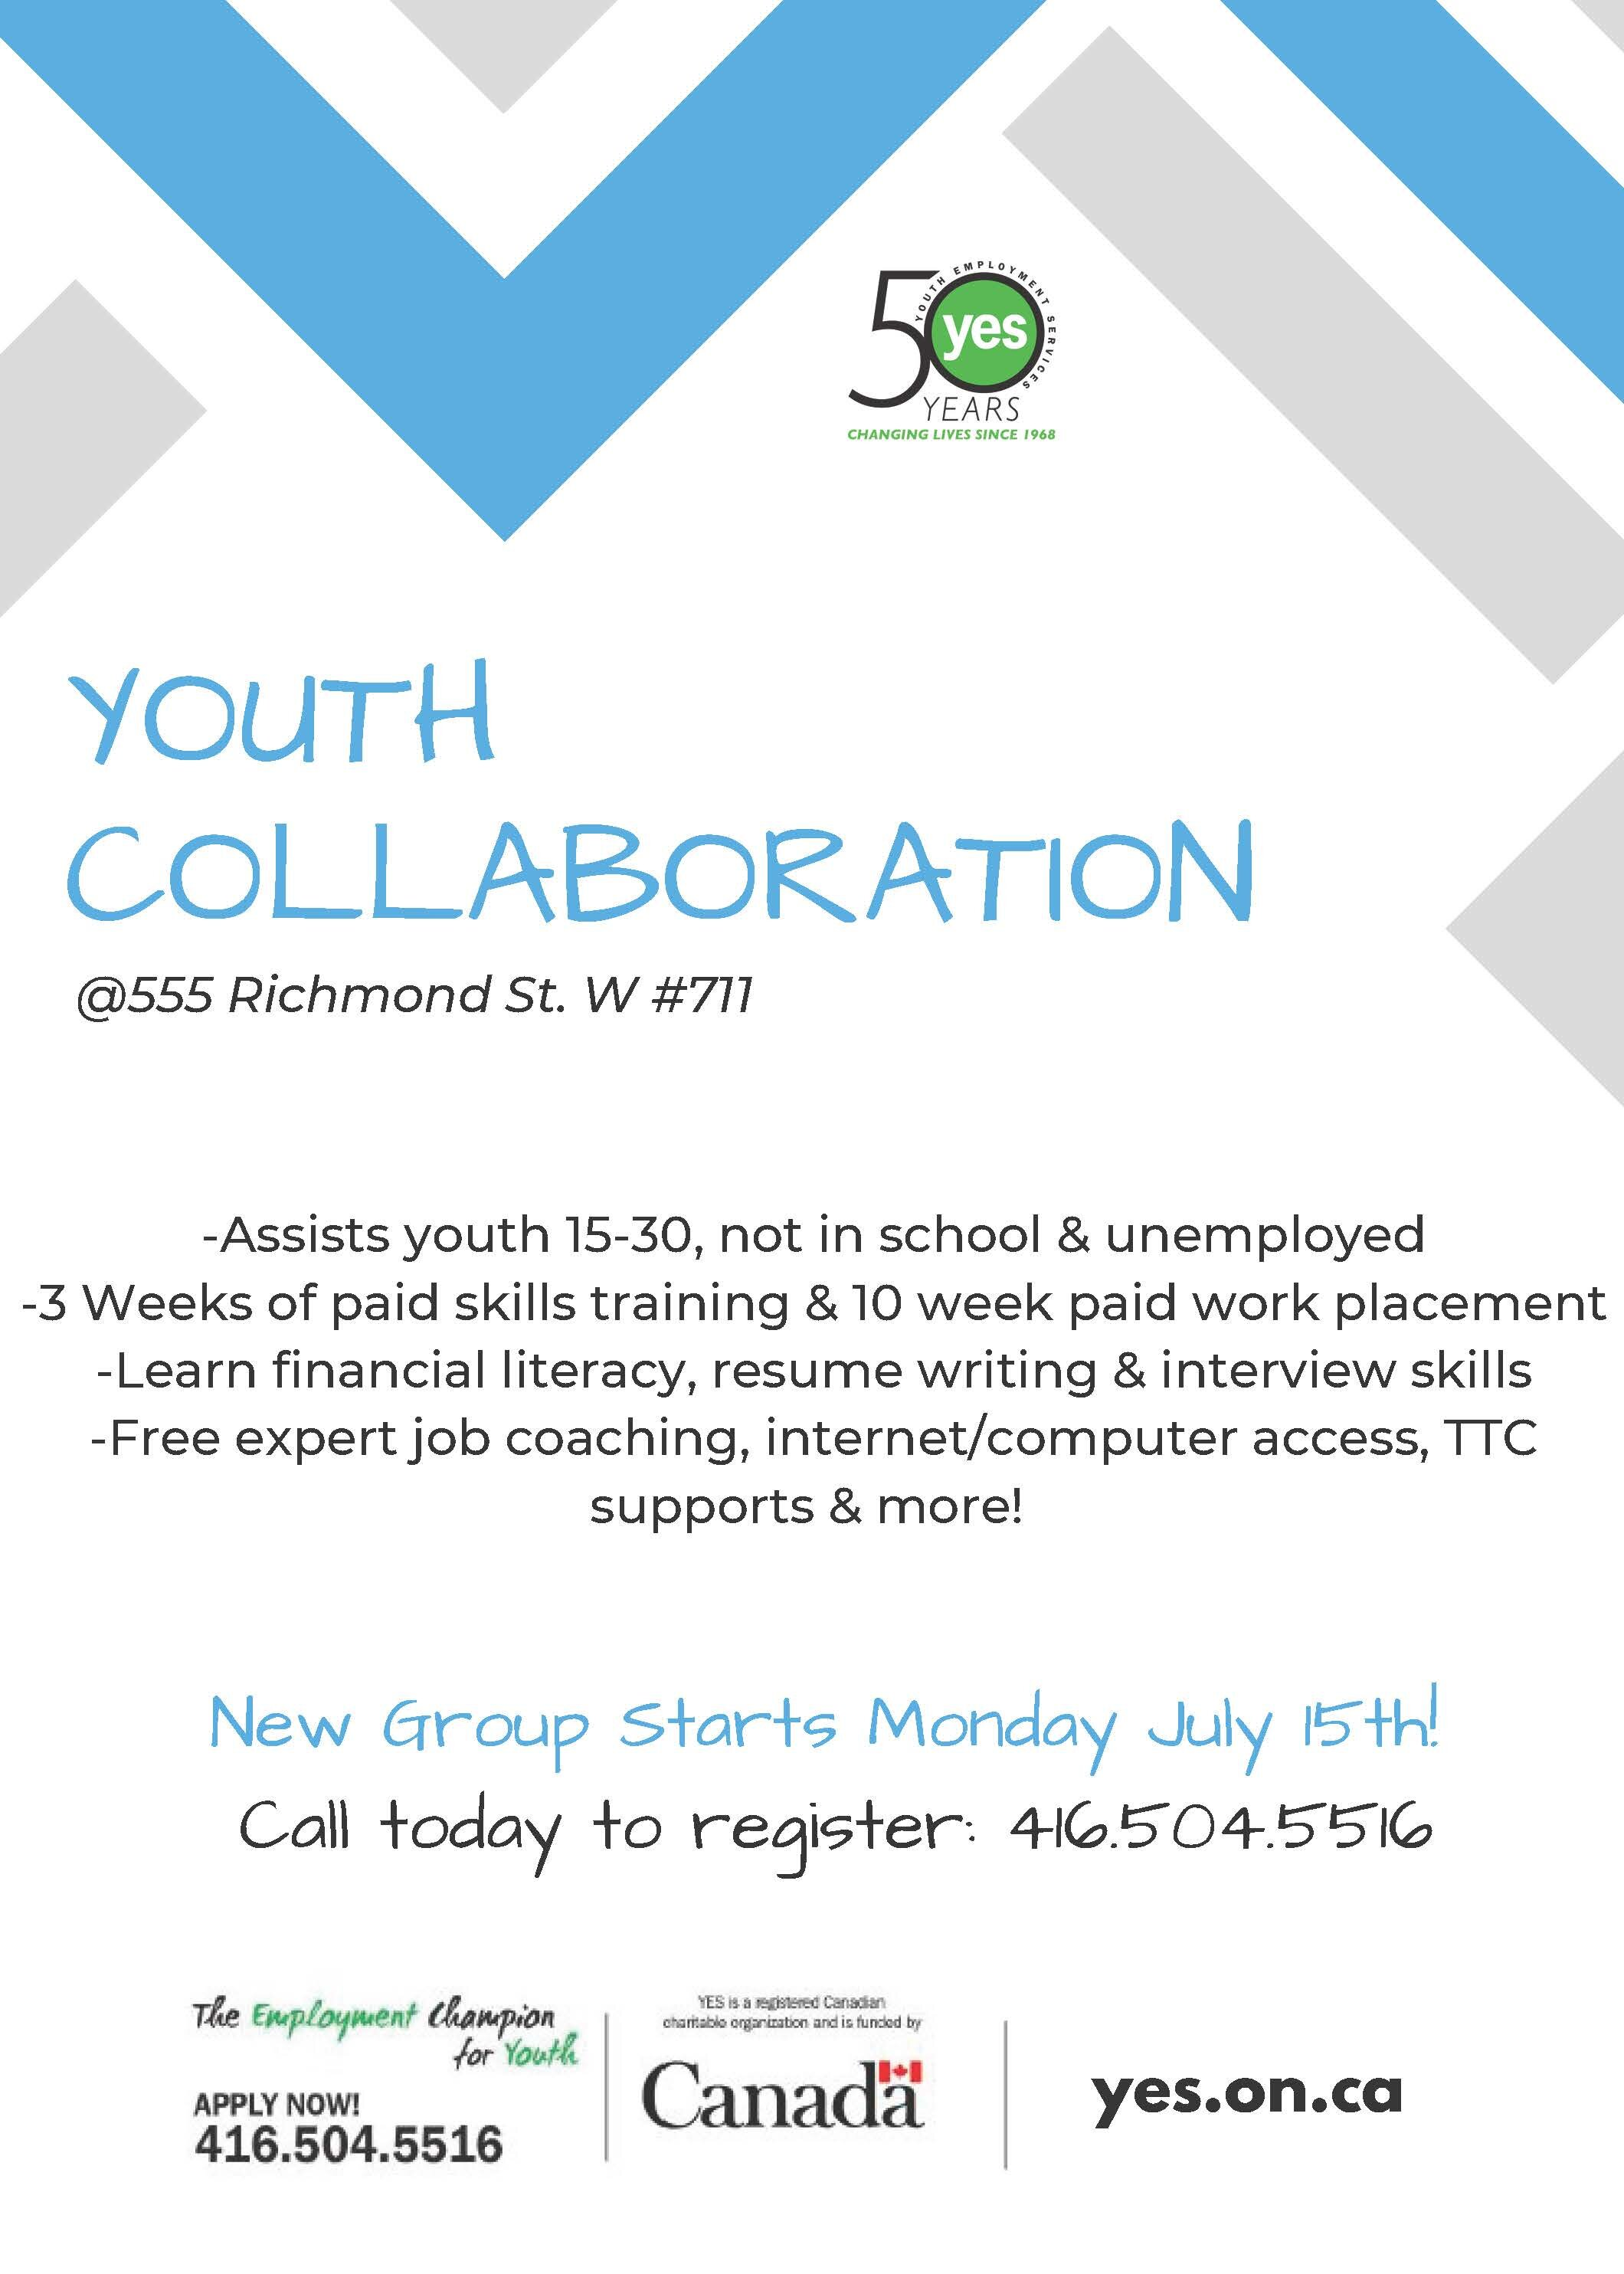 Youth Collaboration @ YES